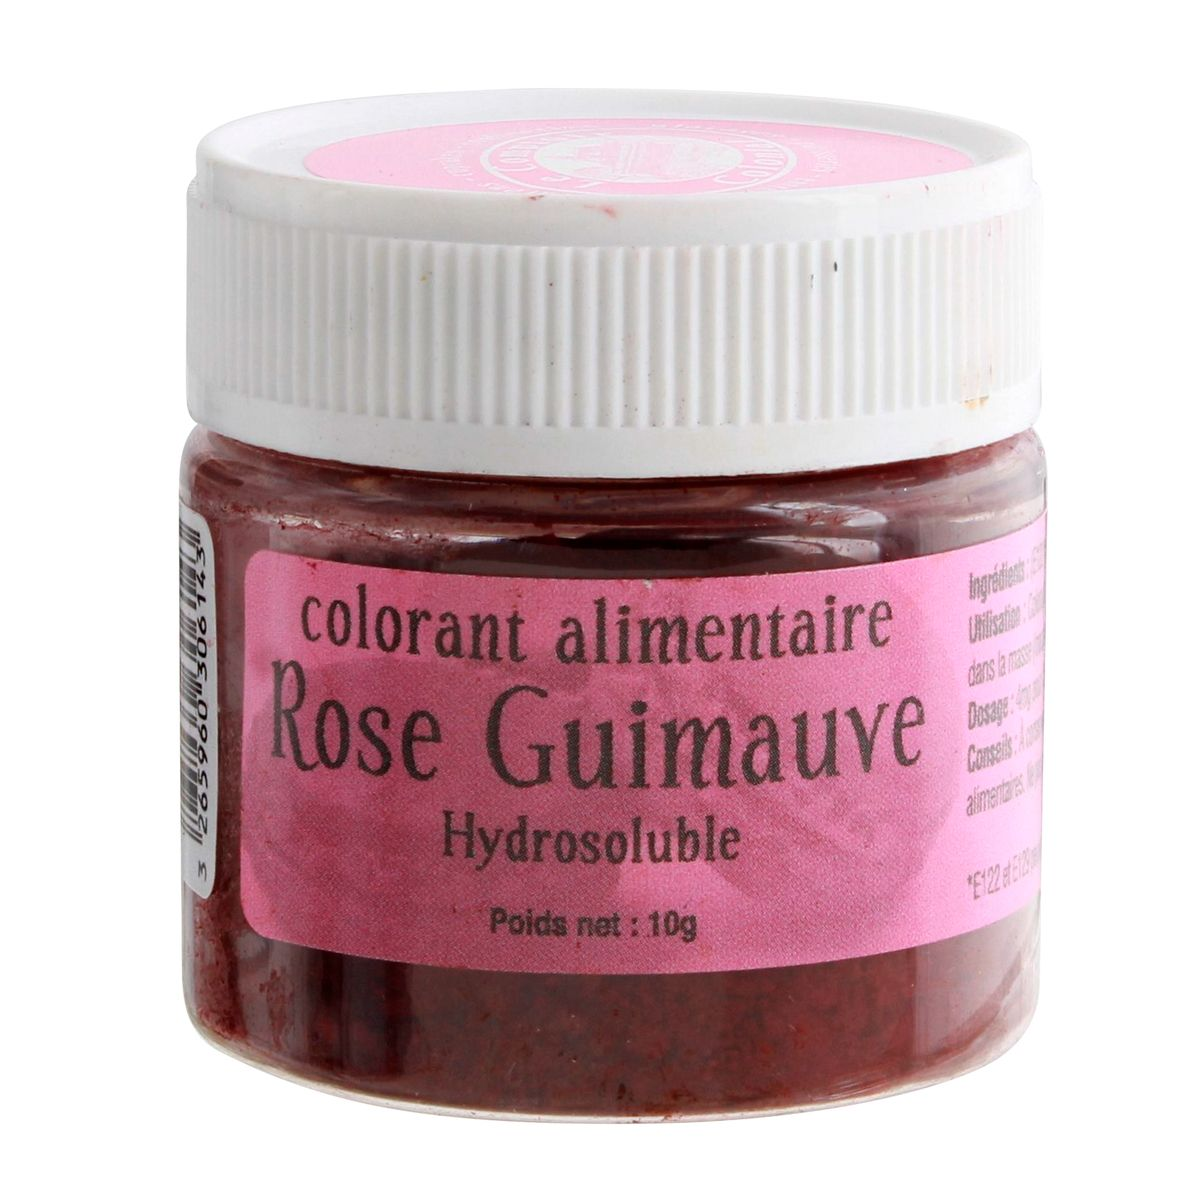 Colorant alimentaire hydrosoluble 10gr rose guimauve - Le Comptoir Colonial